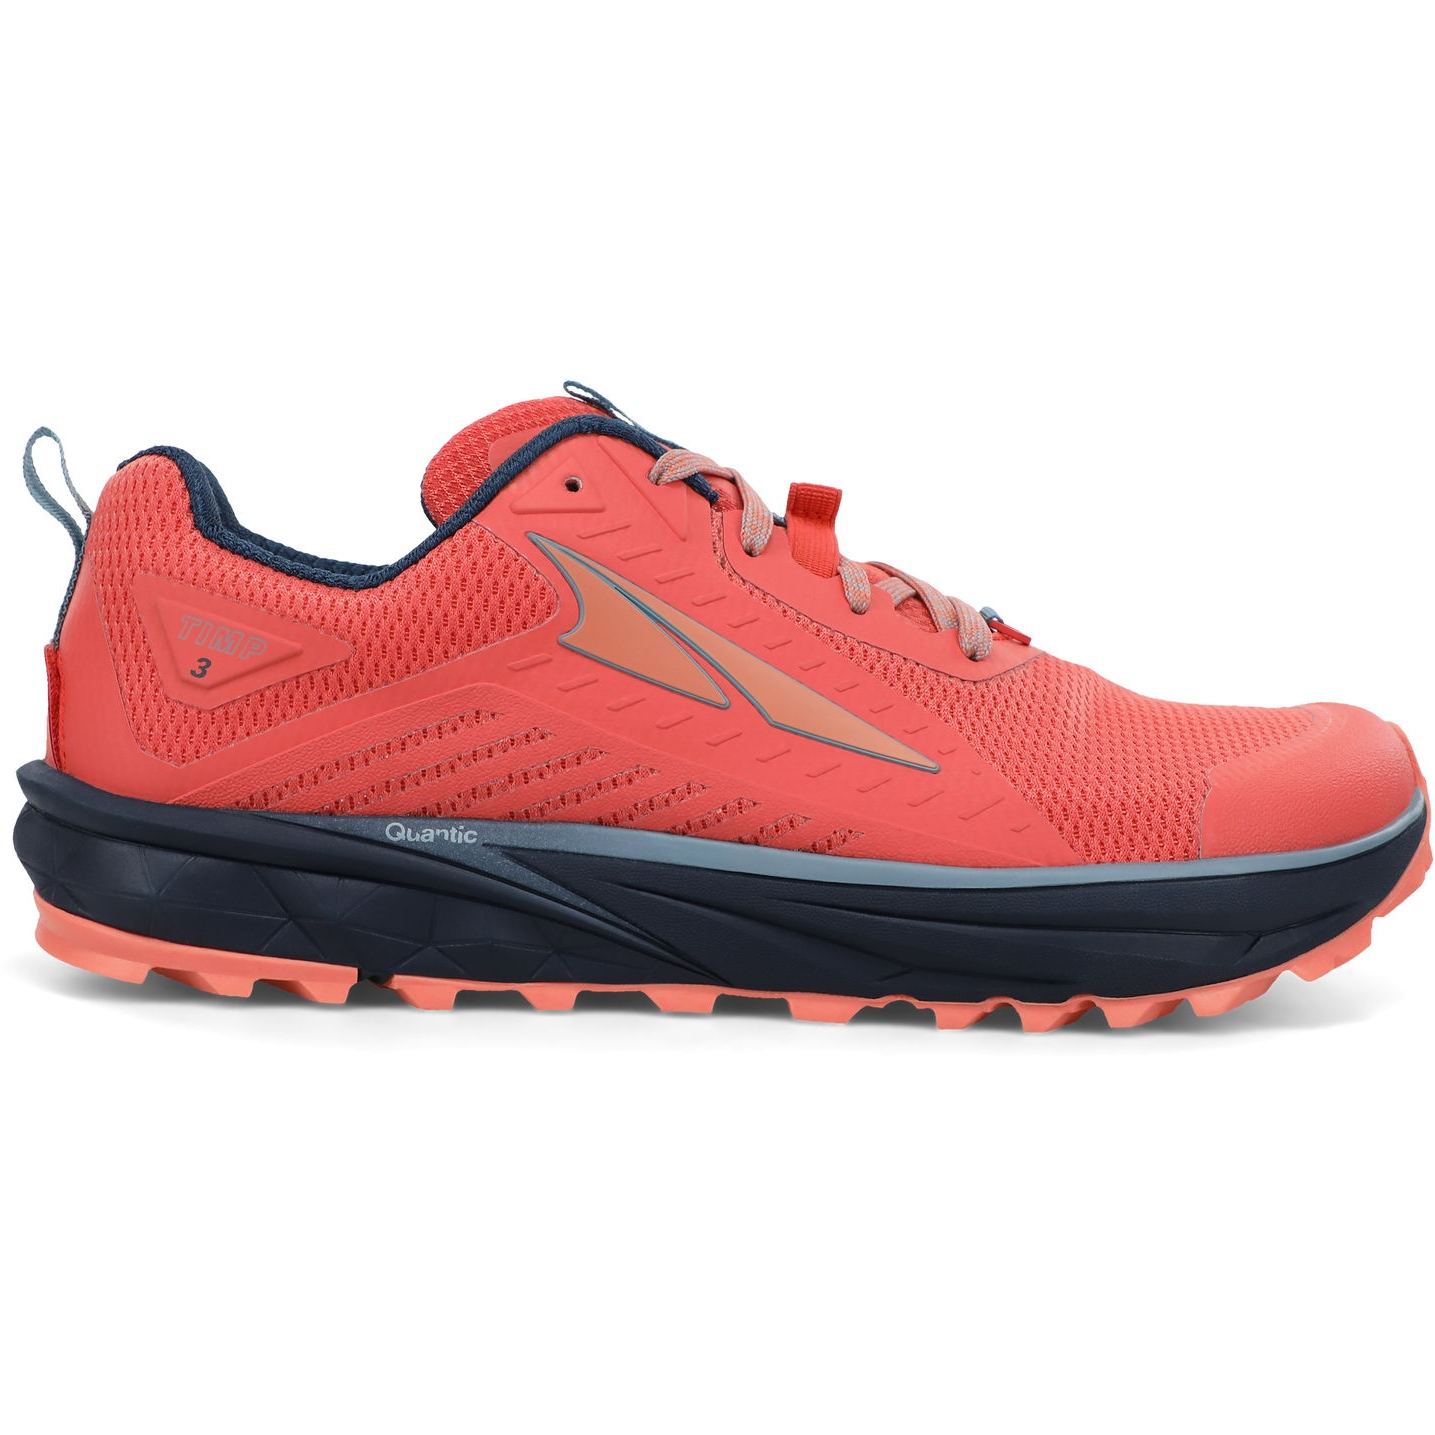 Altra Timp 3 Trail Running Shoes Women - Coral